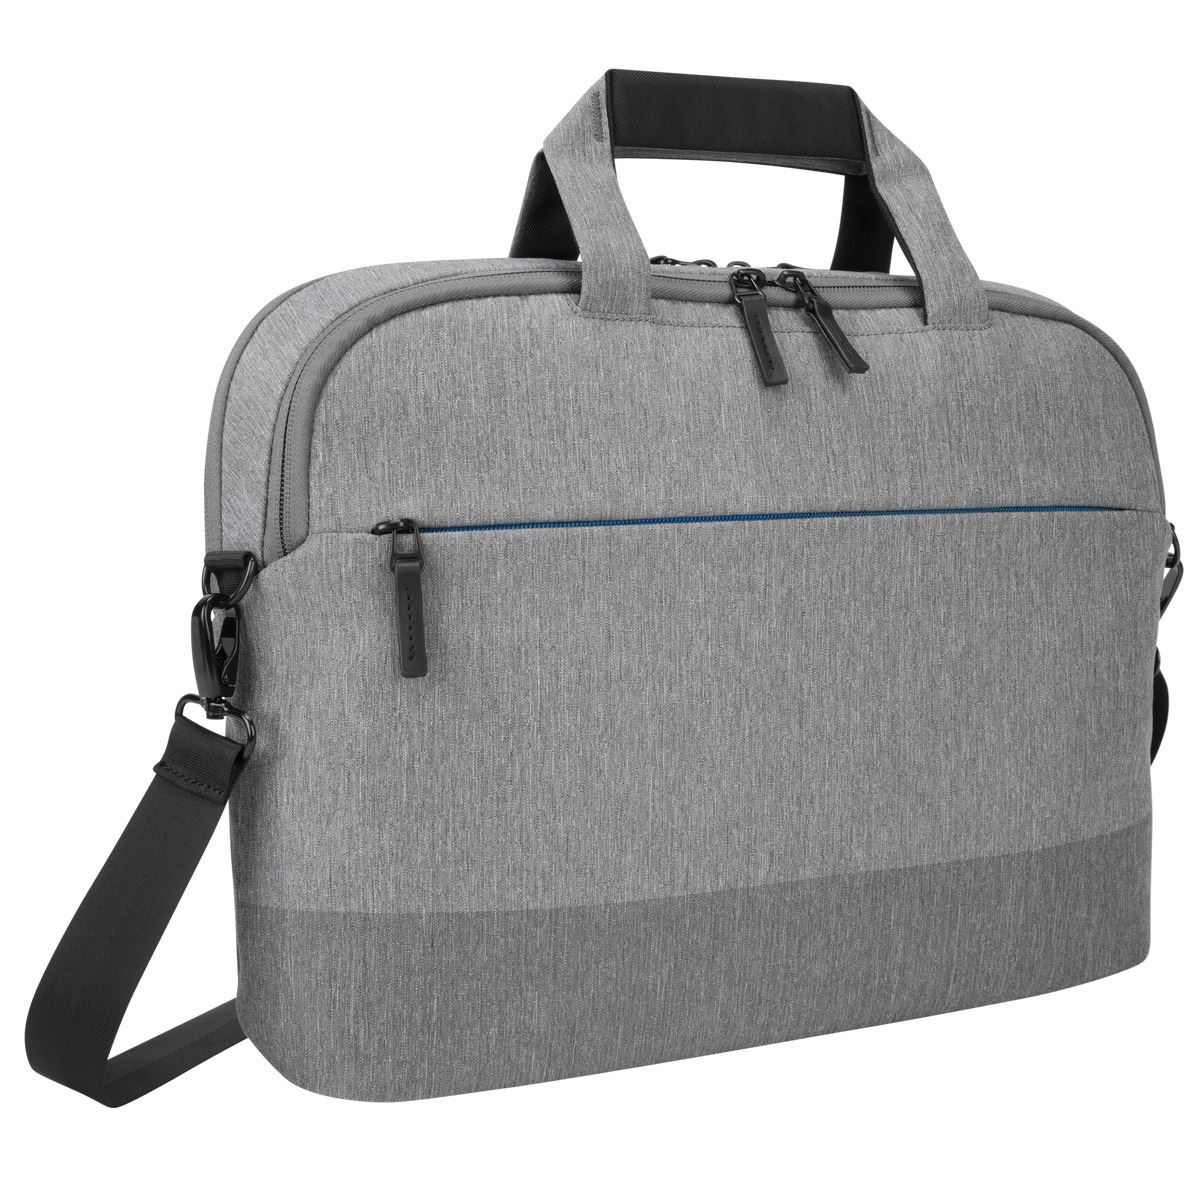 fc3c46e748c 0044250 citylite-laptop-bag-best-for-work-commute-or-university-fits-up-to -156-laptop-grey.jpeg